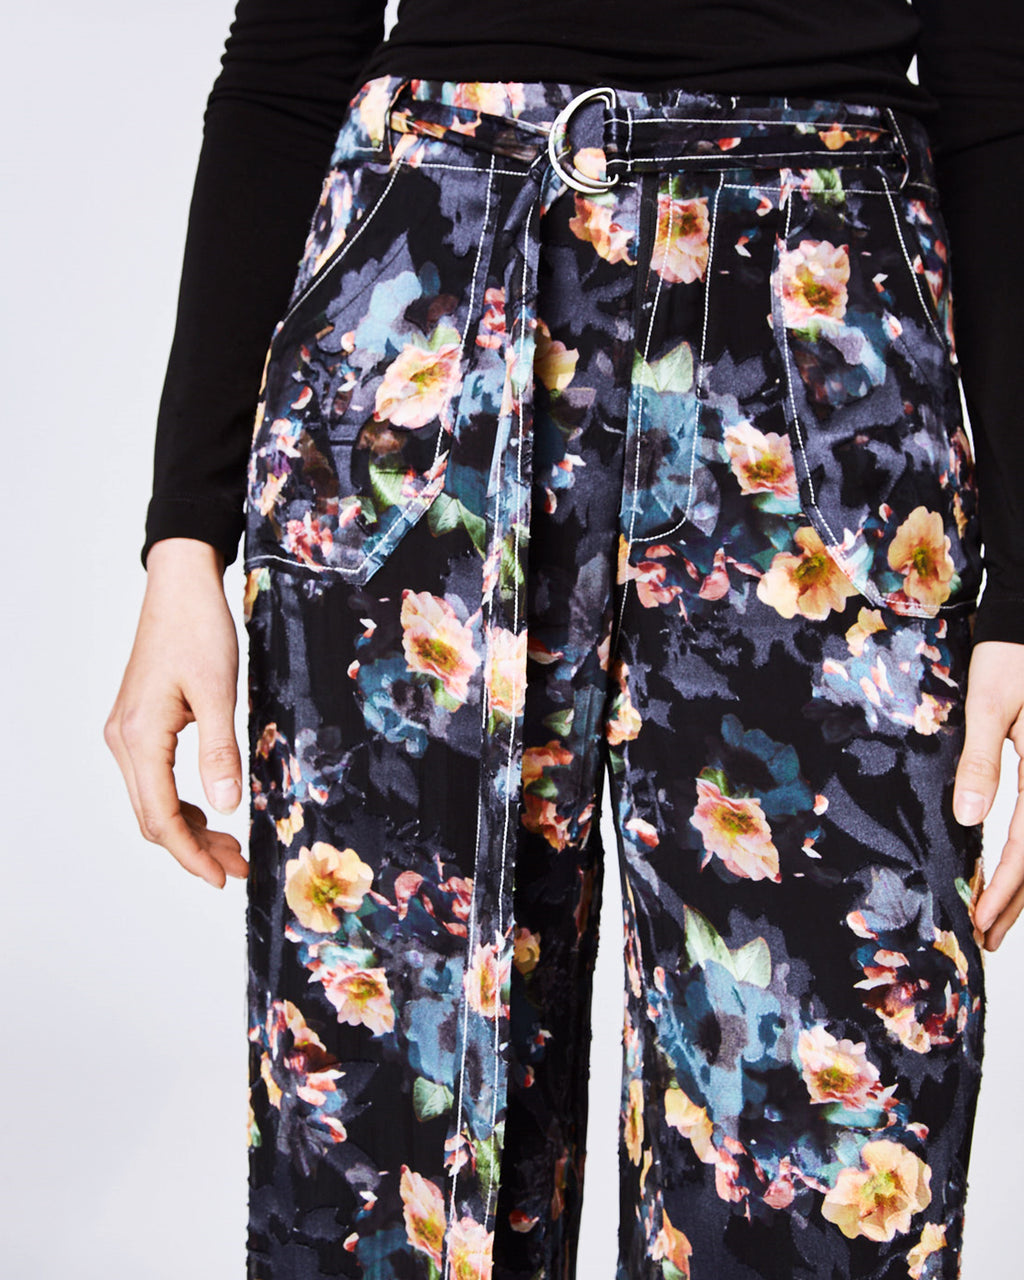 BP10245 - VINTAGE FLORAL BURNOUT PANT - bottoms - pants - With a belted, high waist fit these silk pants feature a wide leg perfect for a day to night look. Pair with heeled booties and a silk top. Finished with a front zipper for closure and fullylined.